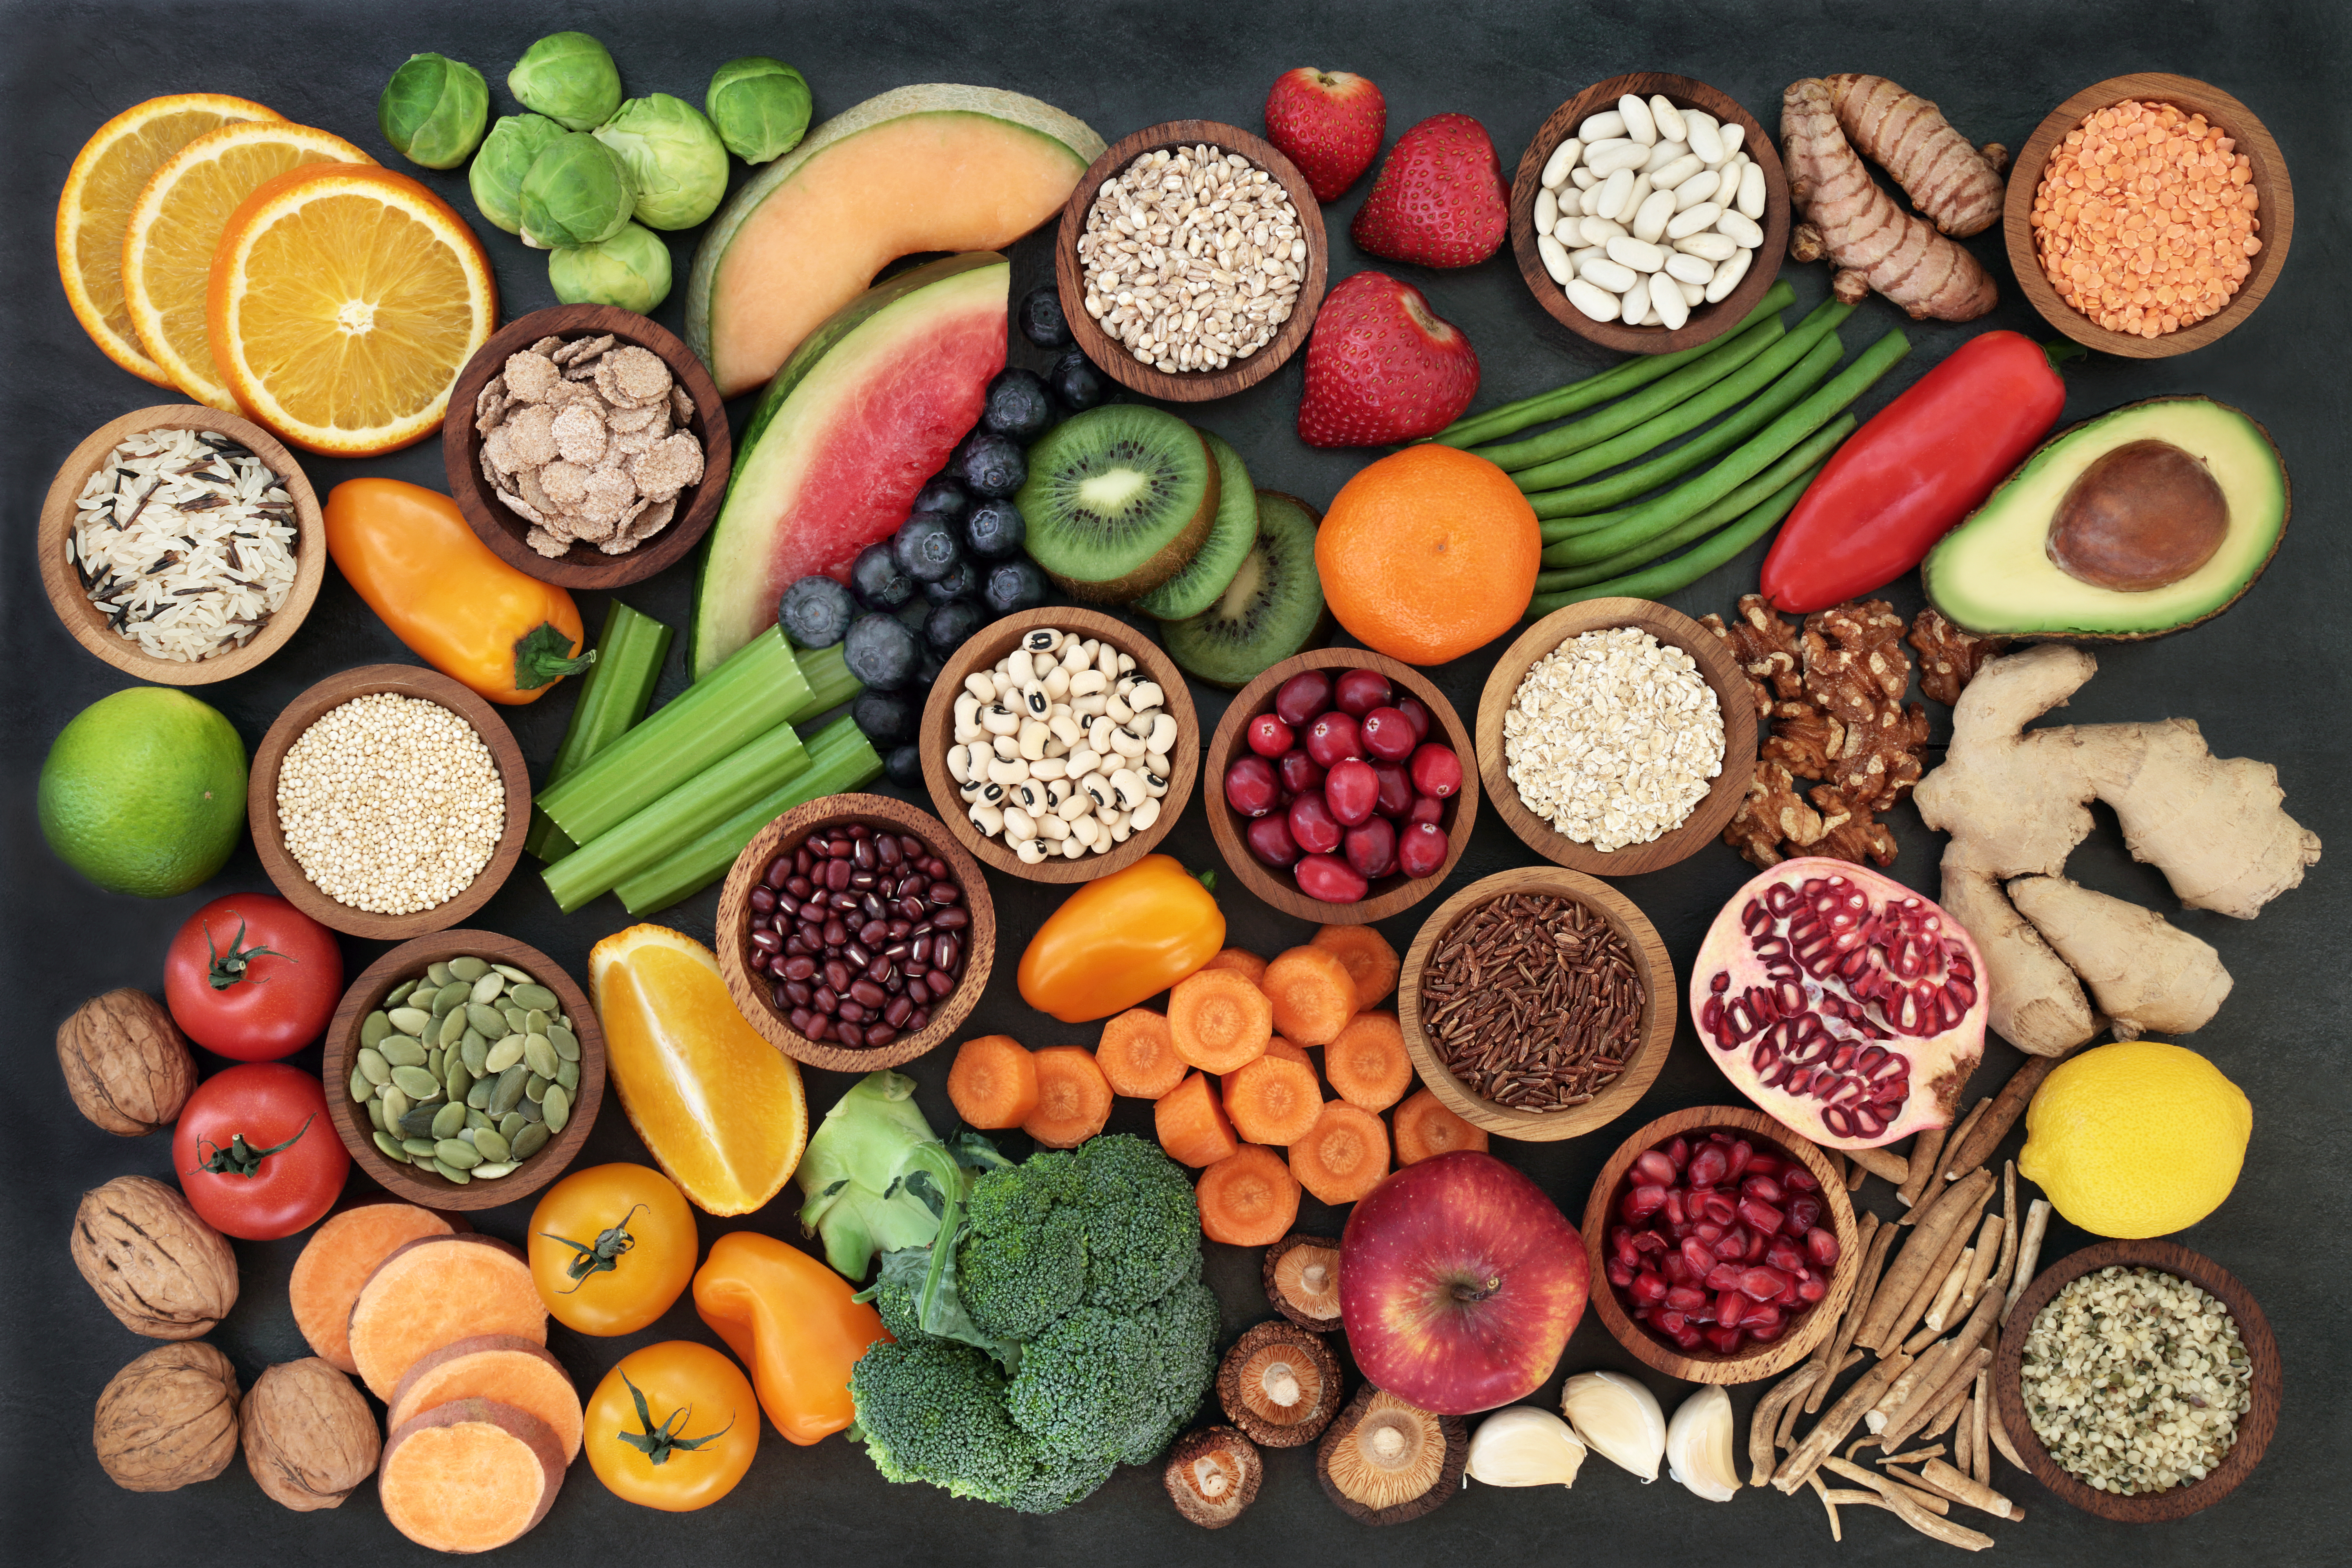 plant-based foods to help combat climate change